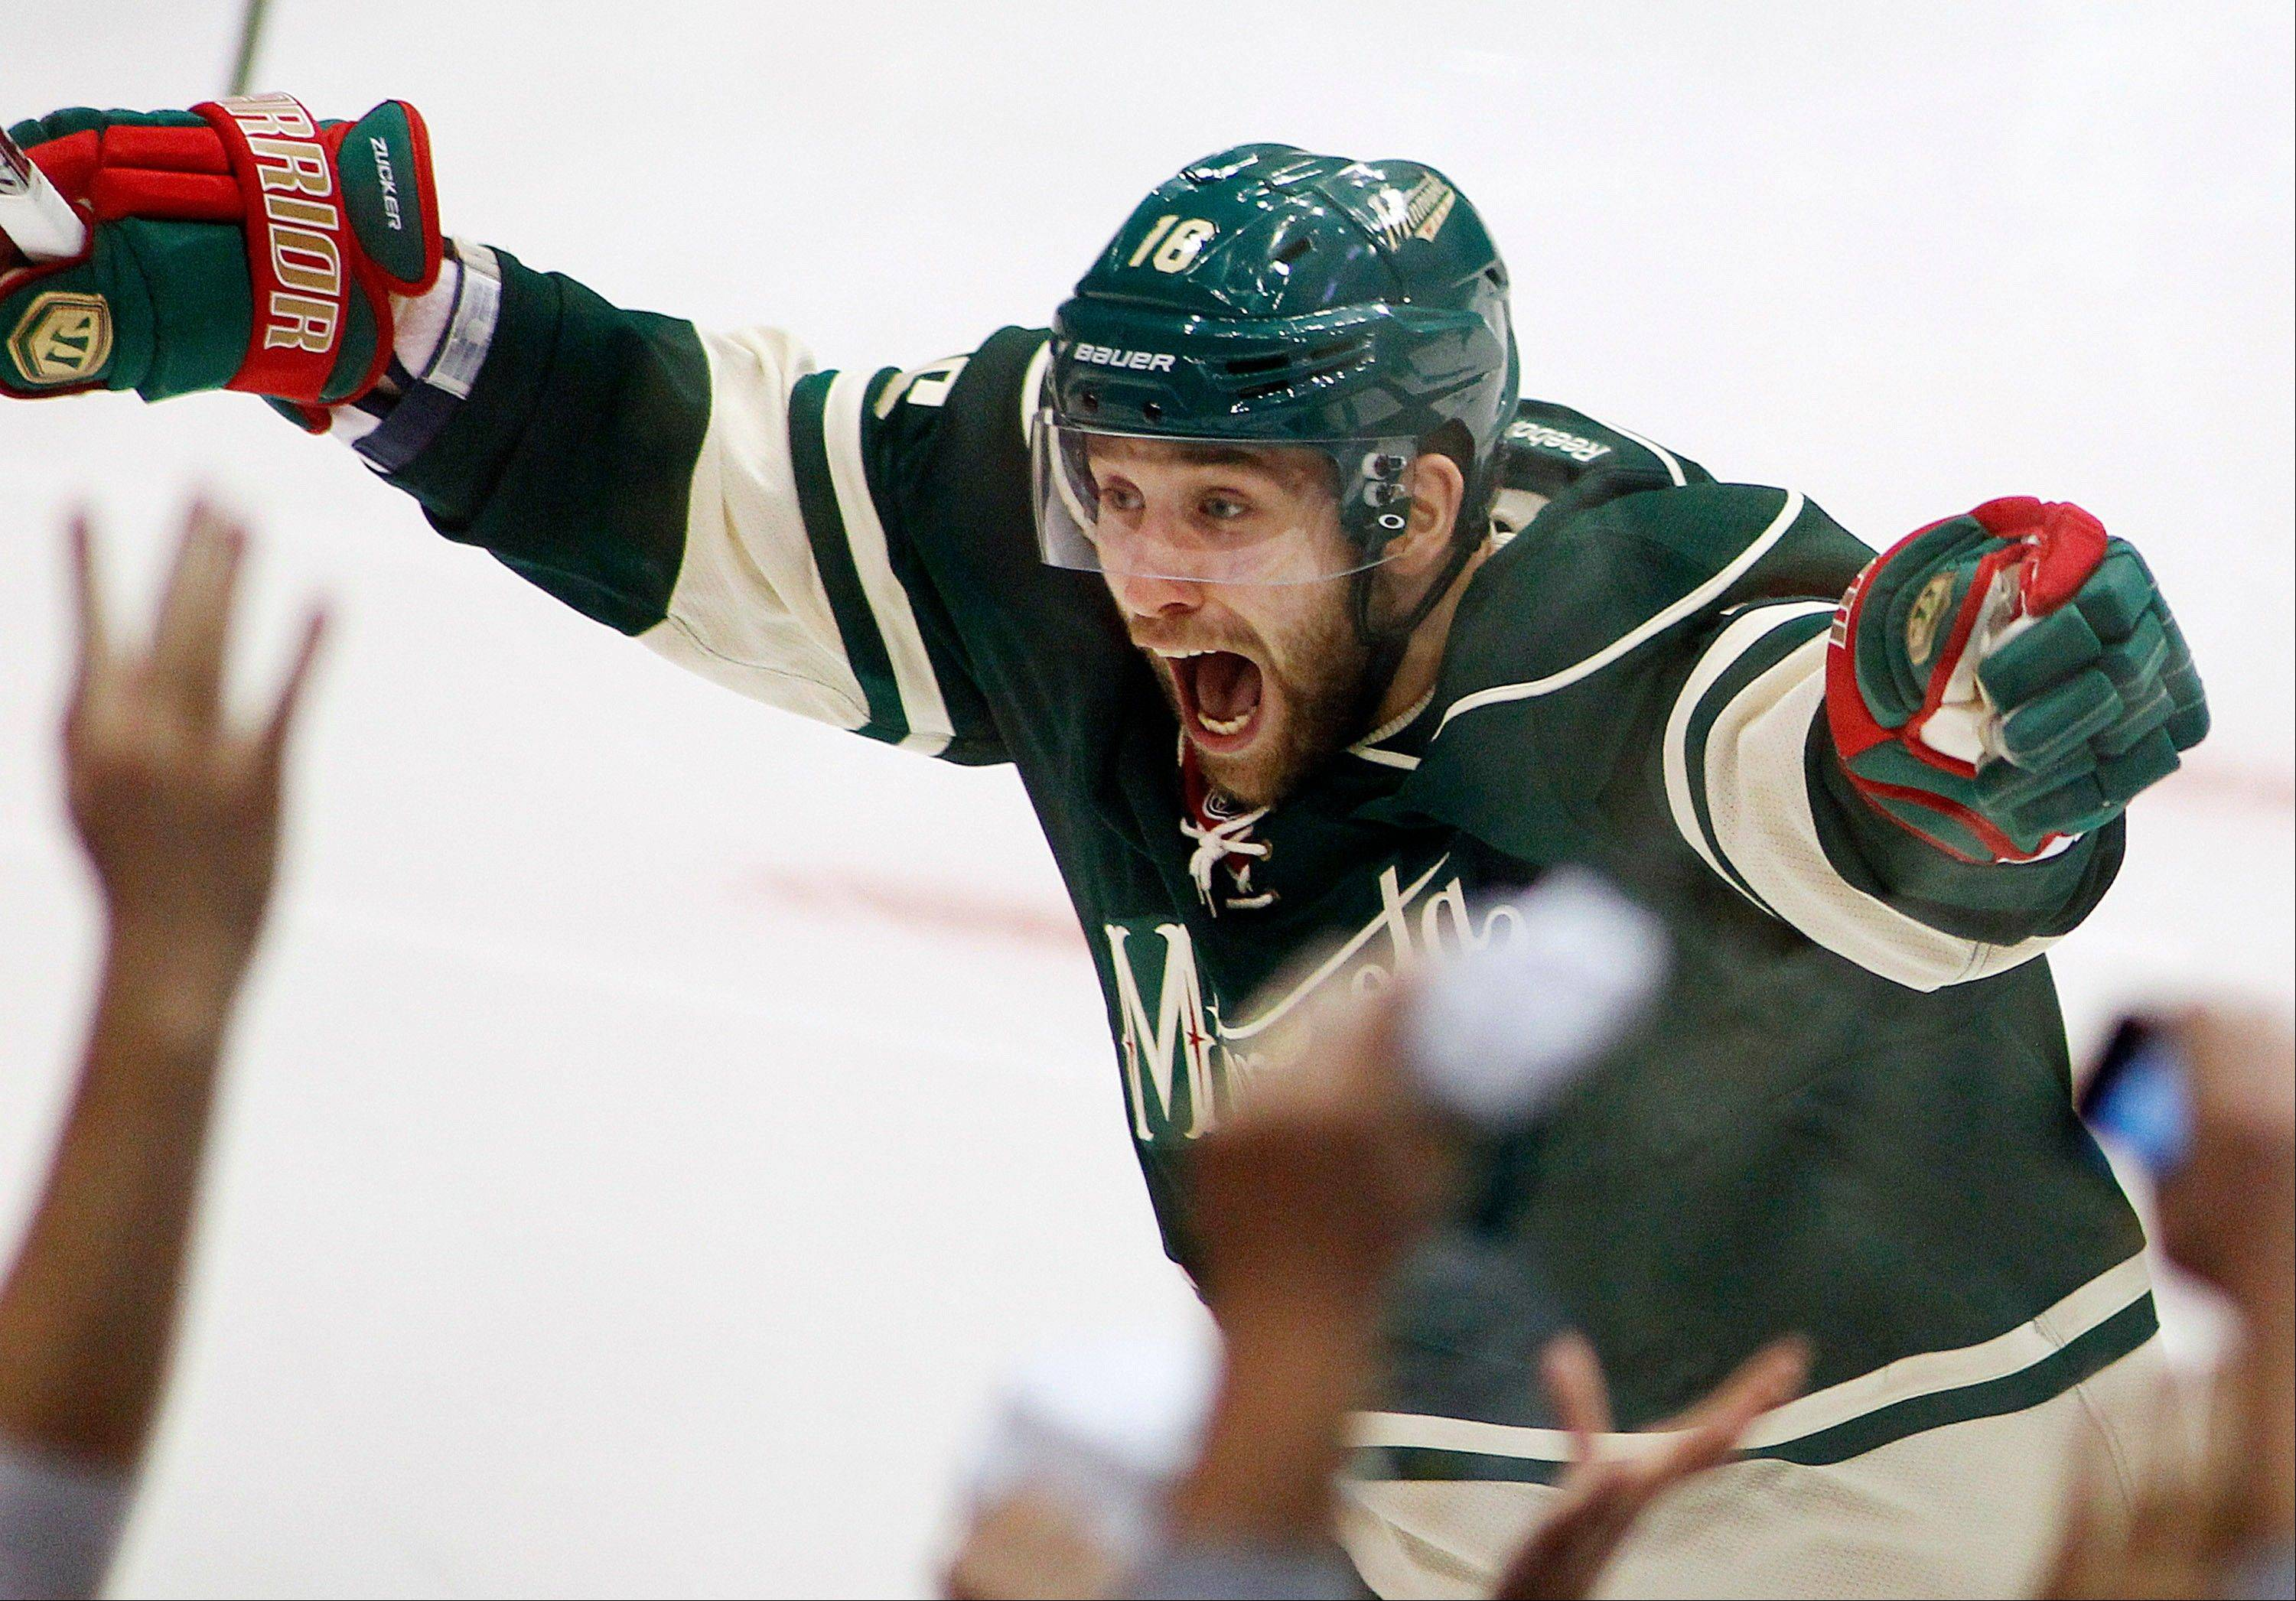 Minnesota Wild's Jason Zucker celebrates his overtime goal against the Chicago Blackhawks in Game 3. The Wild won 3-2.